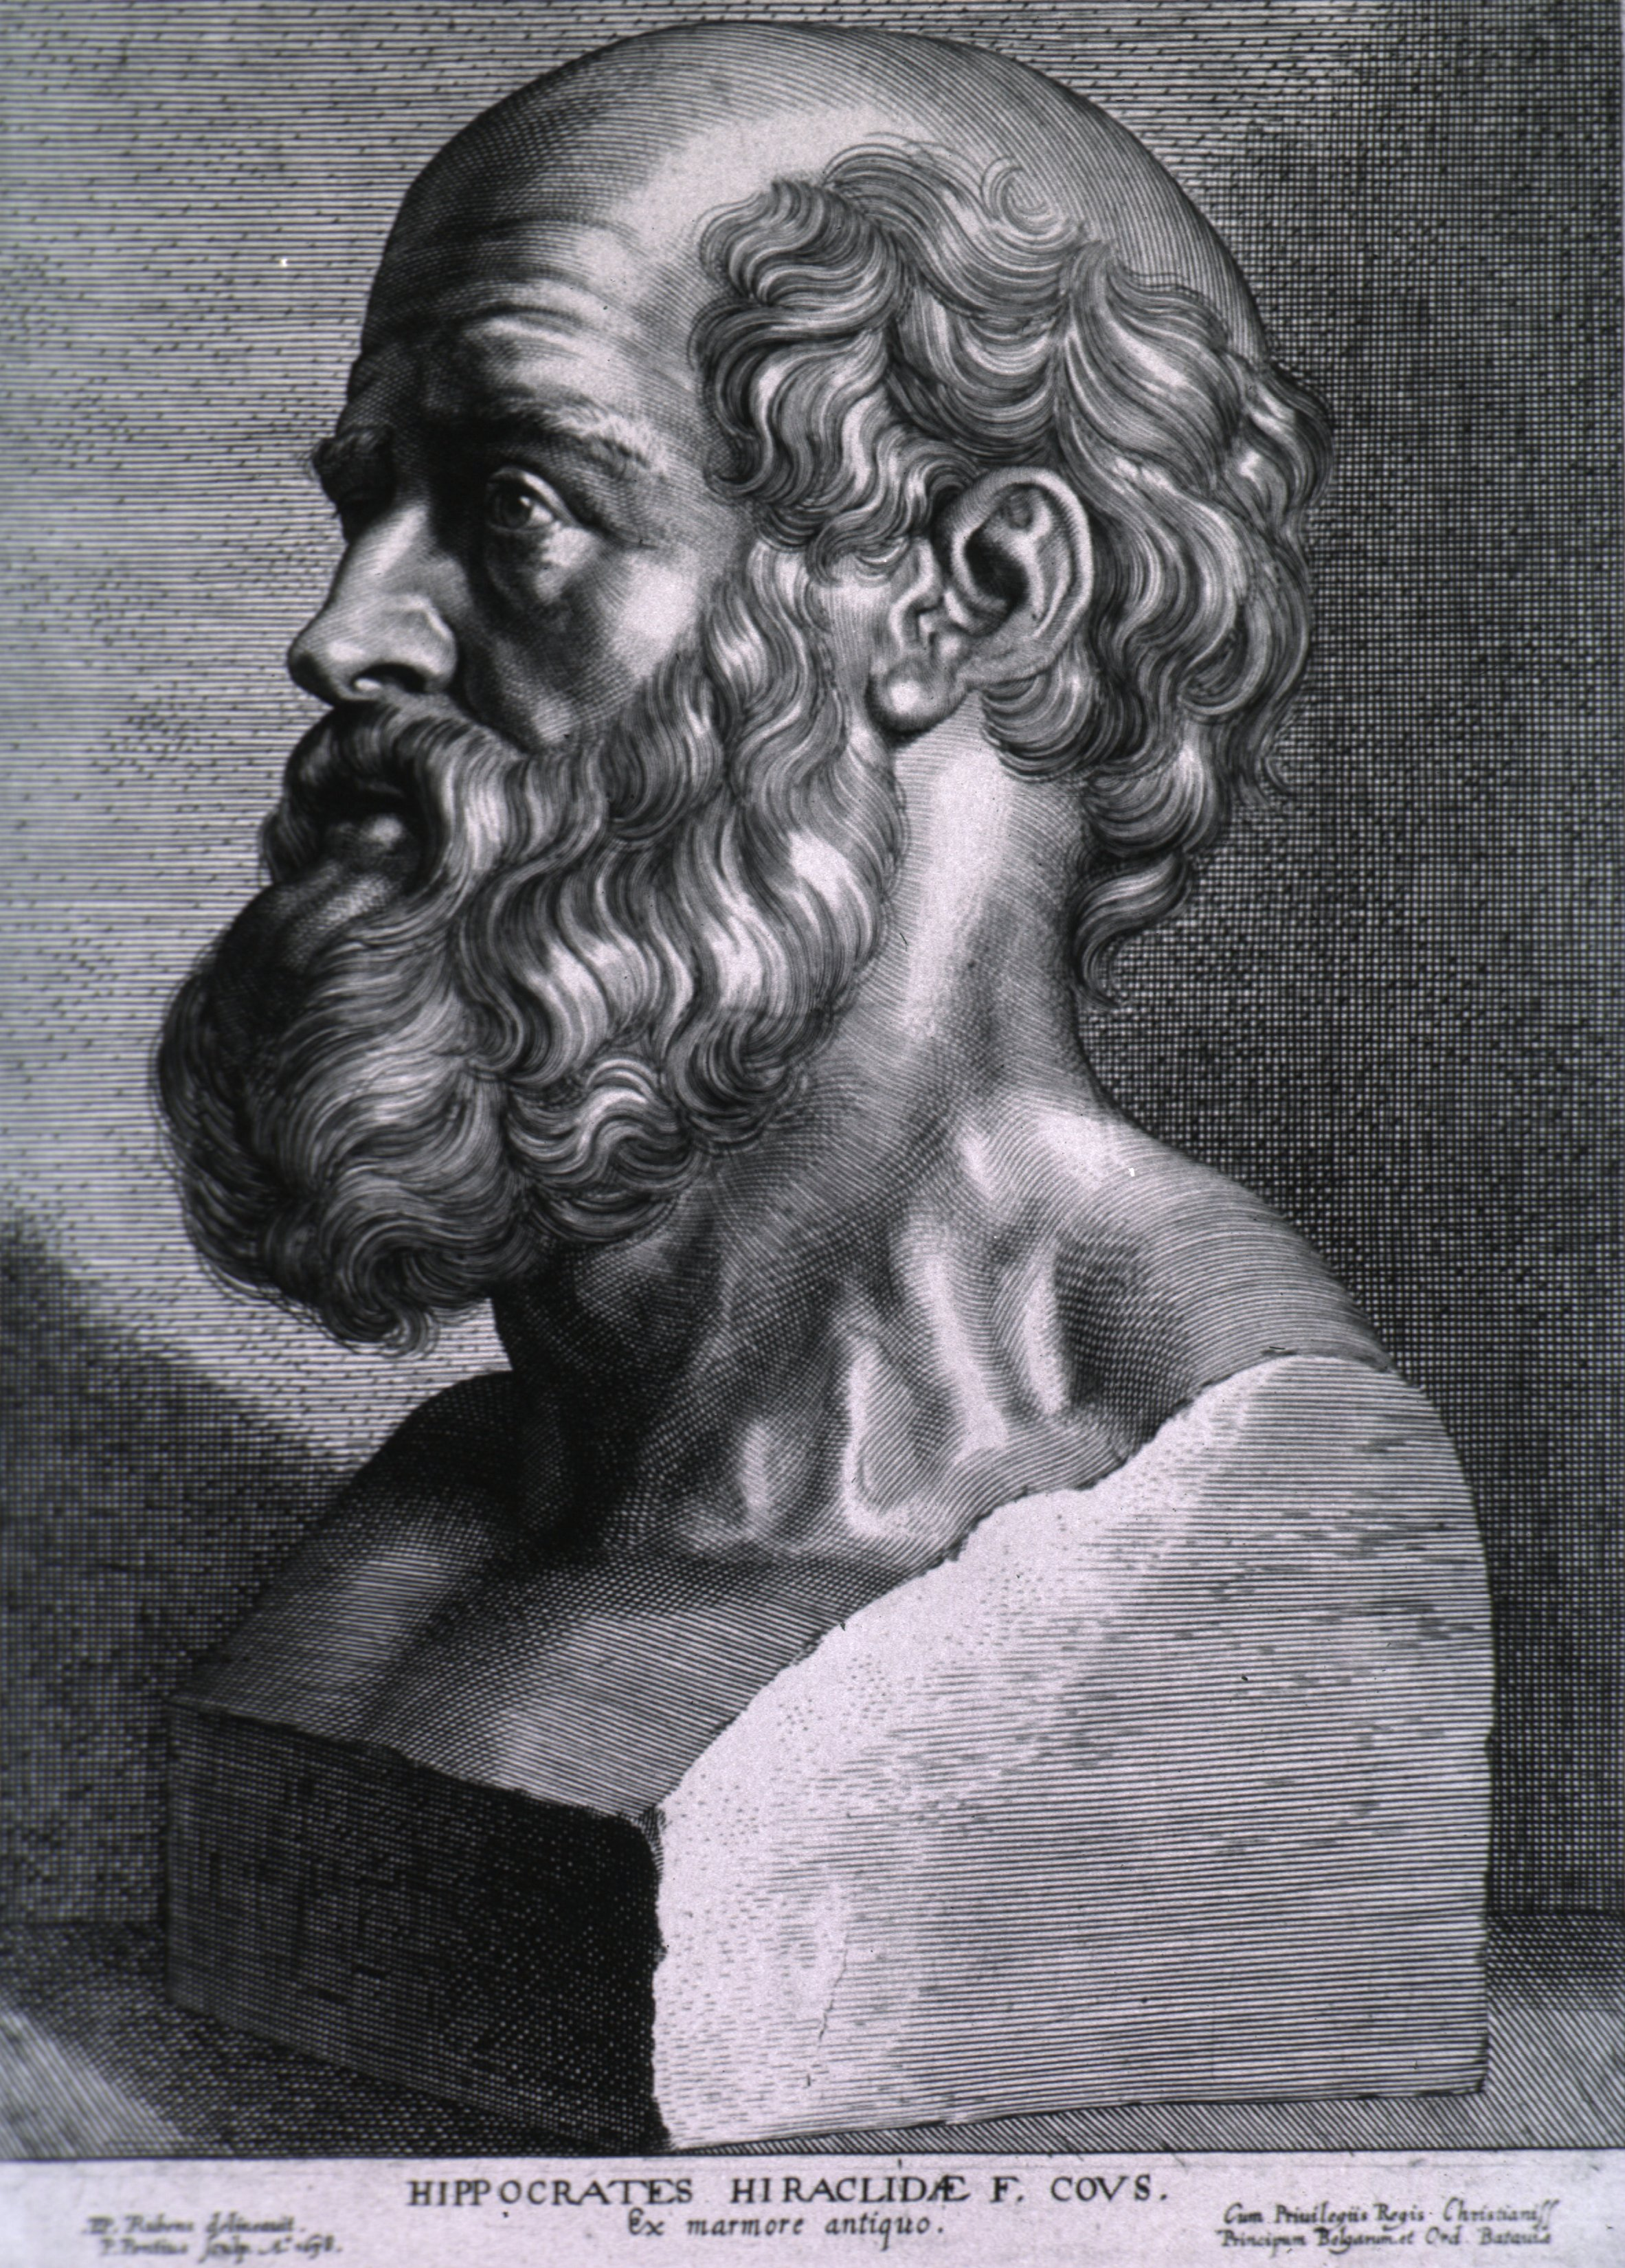 Hippocrates, father of modern medicine, advocated for the inclusion of people with epilepsy.